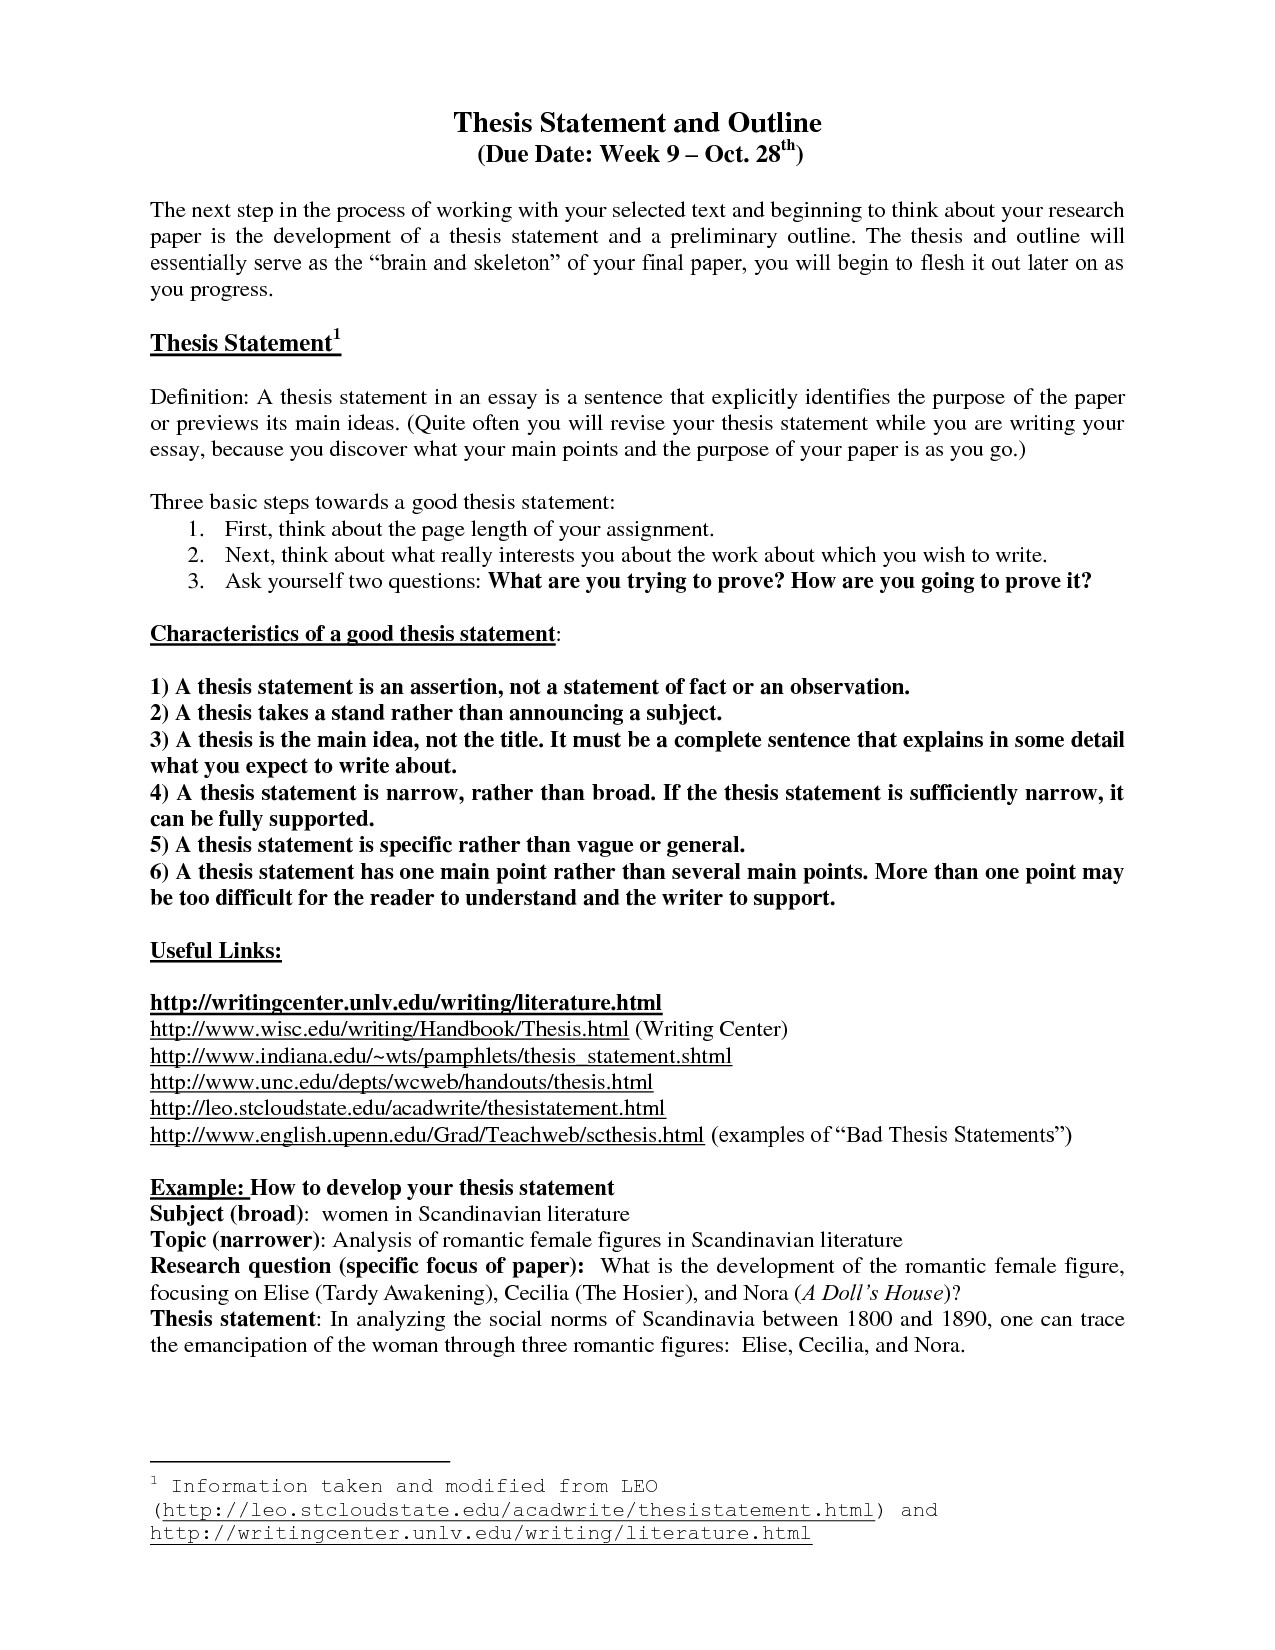 What Is The Thesis Of An Essay  Essay Examples For College also Writing A Biography Essay Examples Of Argumentative Thesis Statements For Essays  Essay Literature